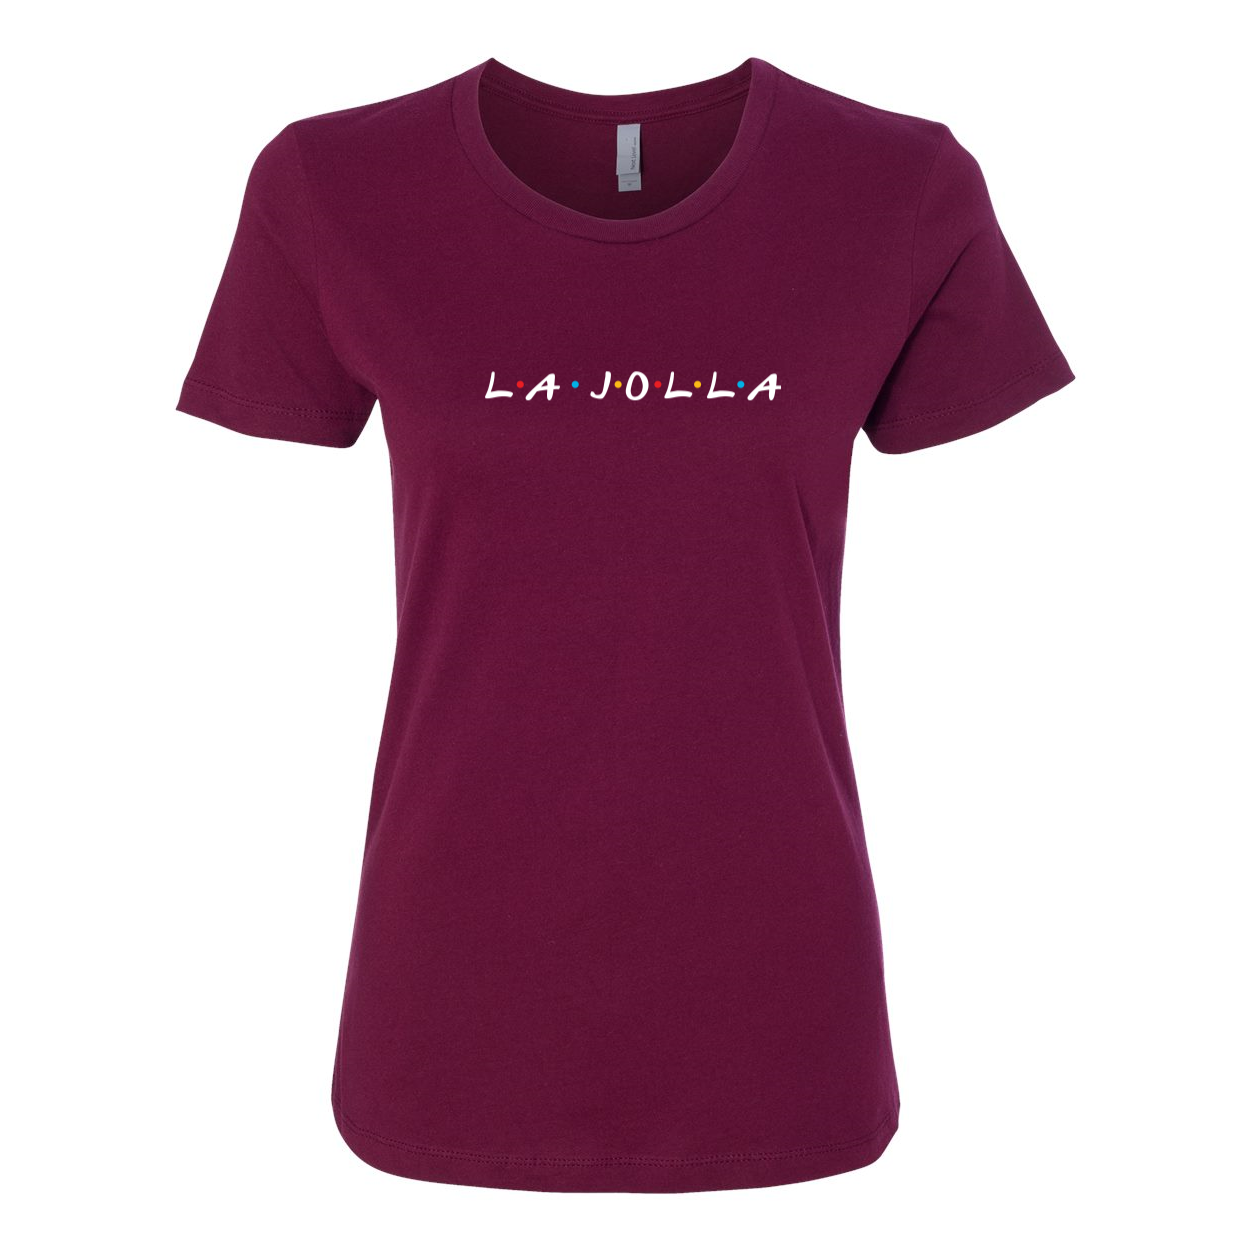 La Jolla - T-Shirt (Women's)